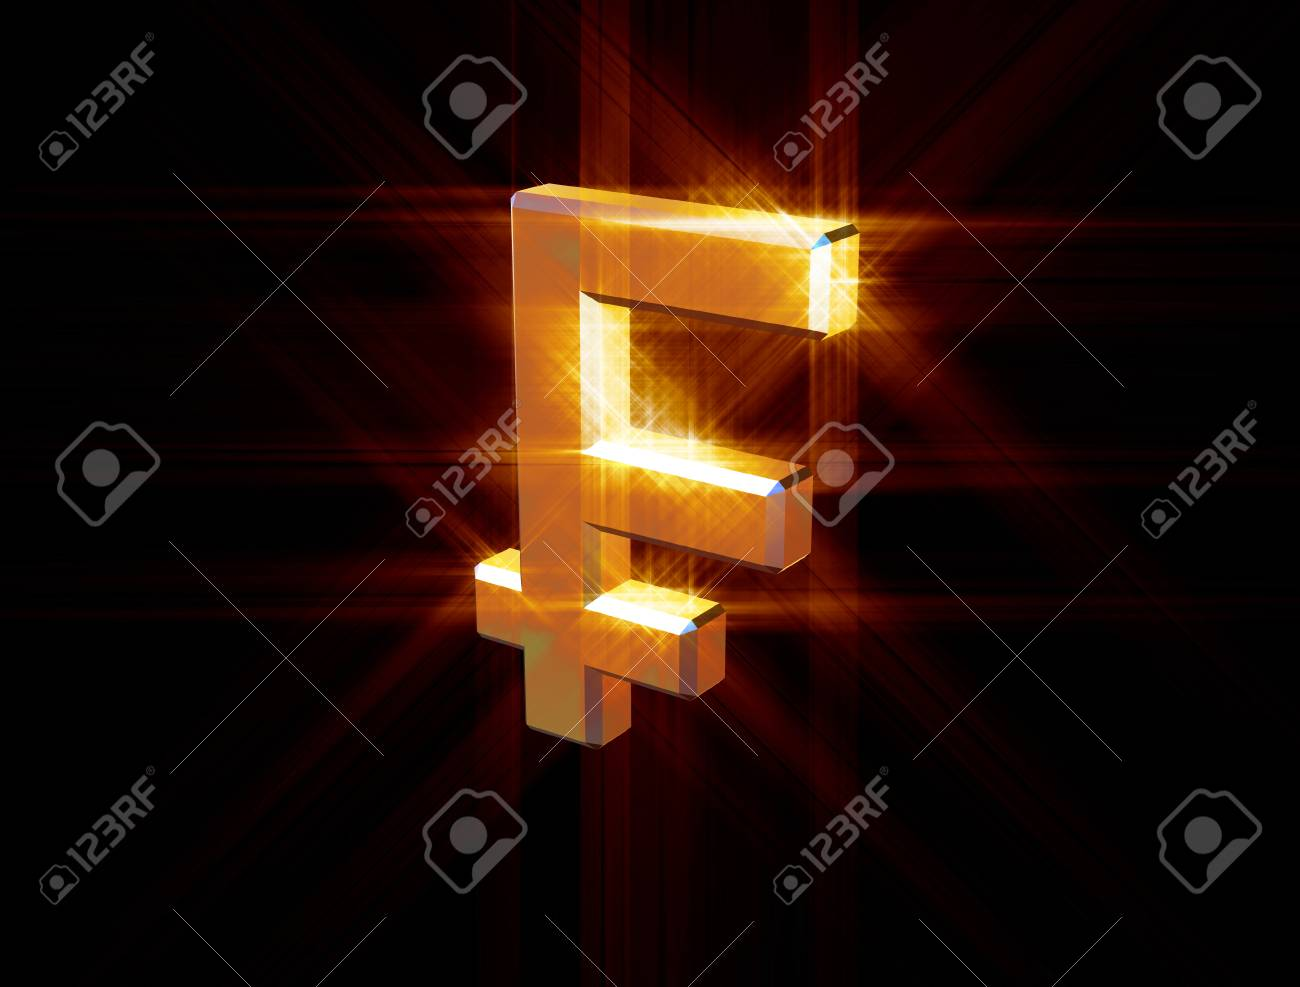 three-dimensional image of the gold franc symbol among the colored rays - 74942950